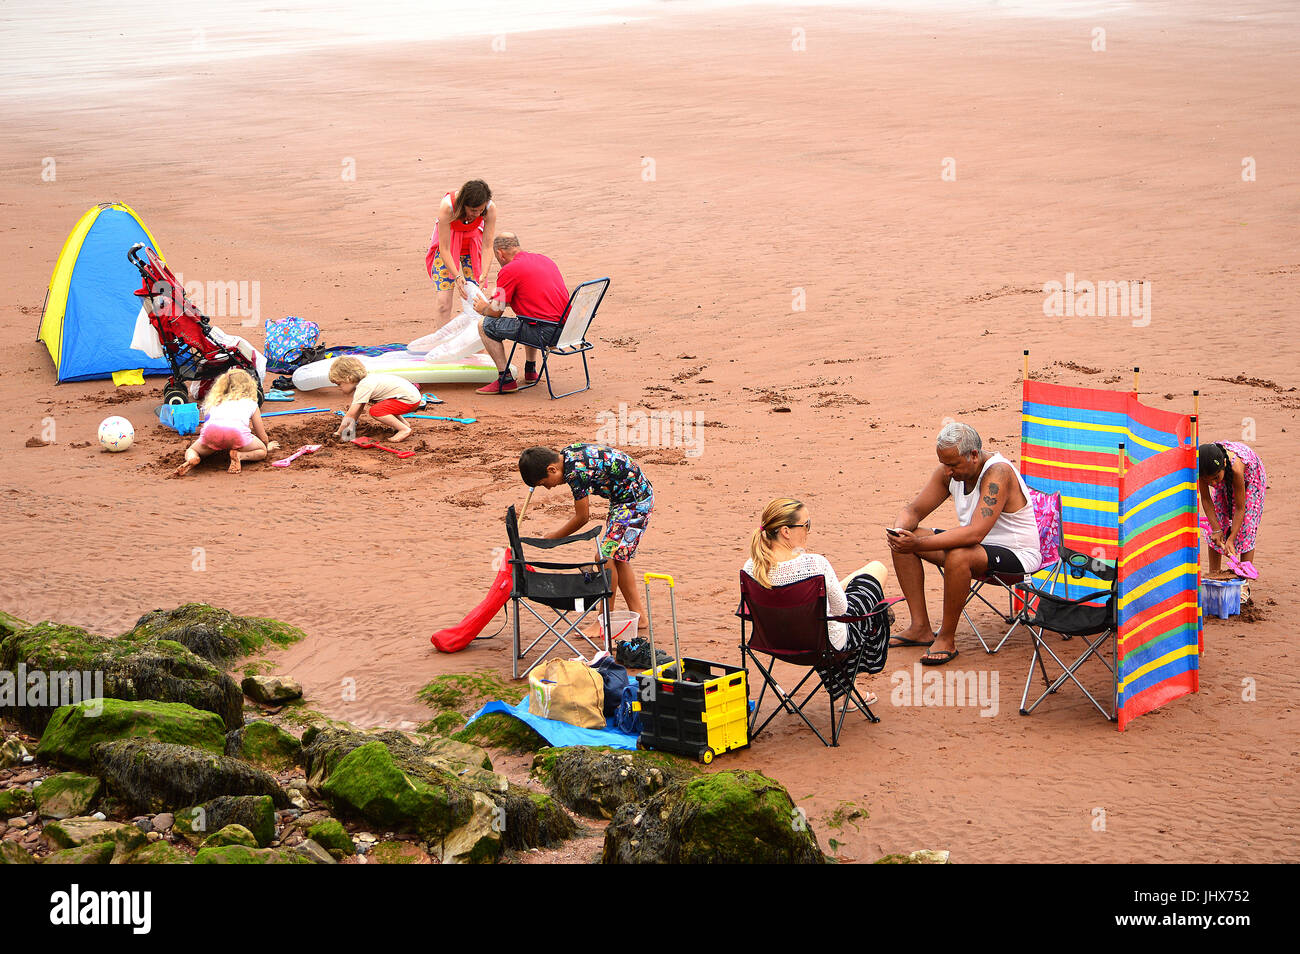 Adults and children all having fun on a sandy seaside beach in Devon - Stock Image